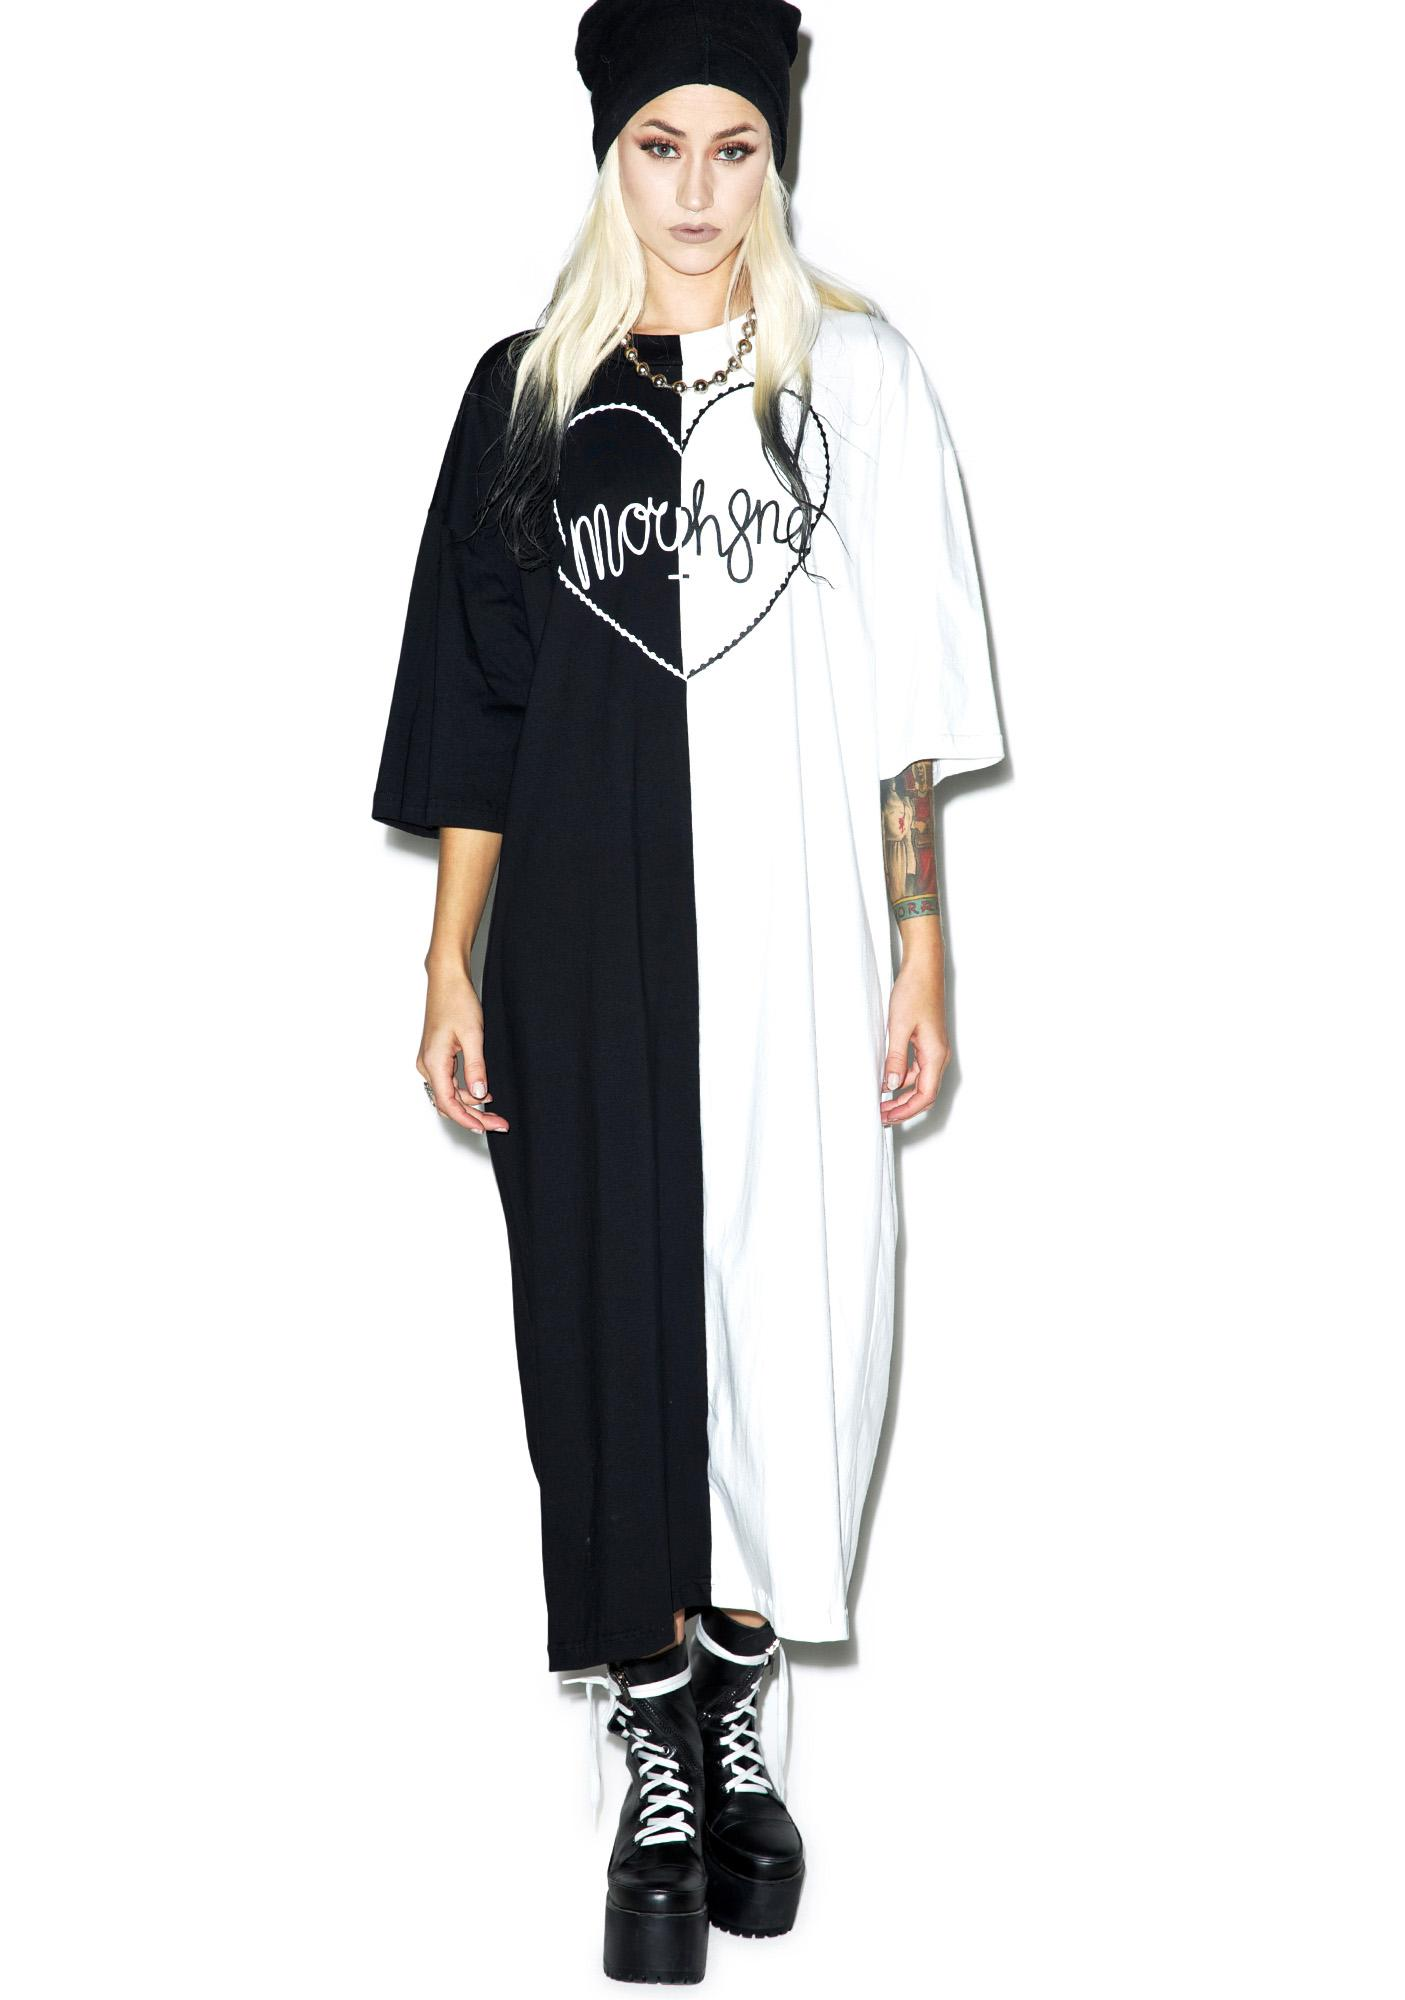 Morph8ne Grace Of The Grave T-Shirt Dress